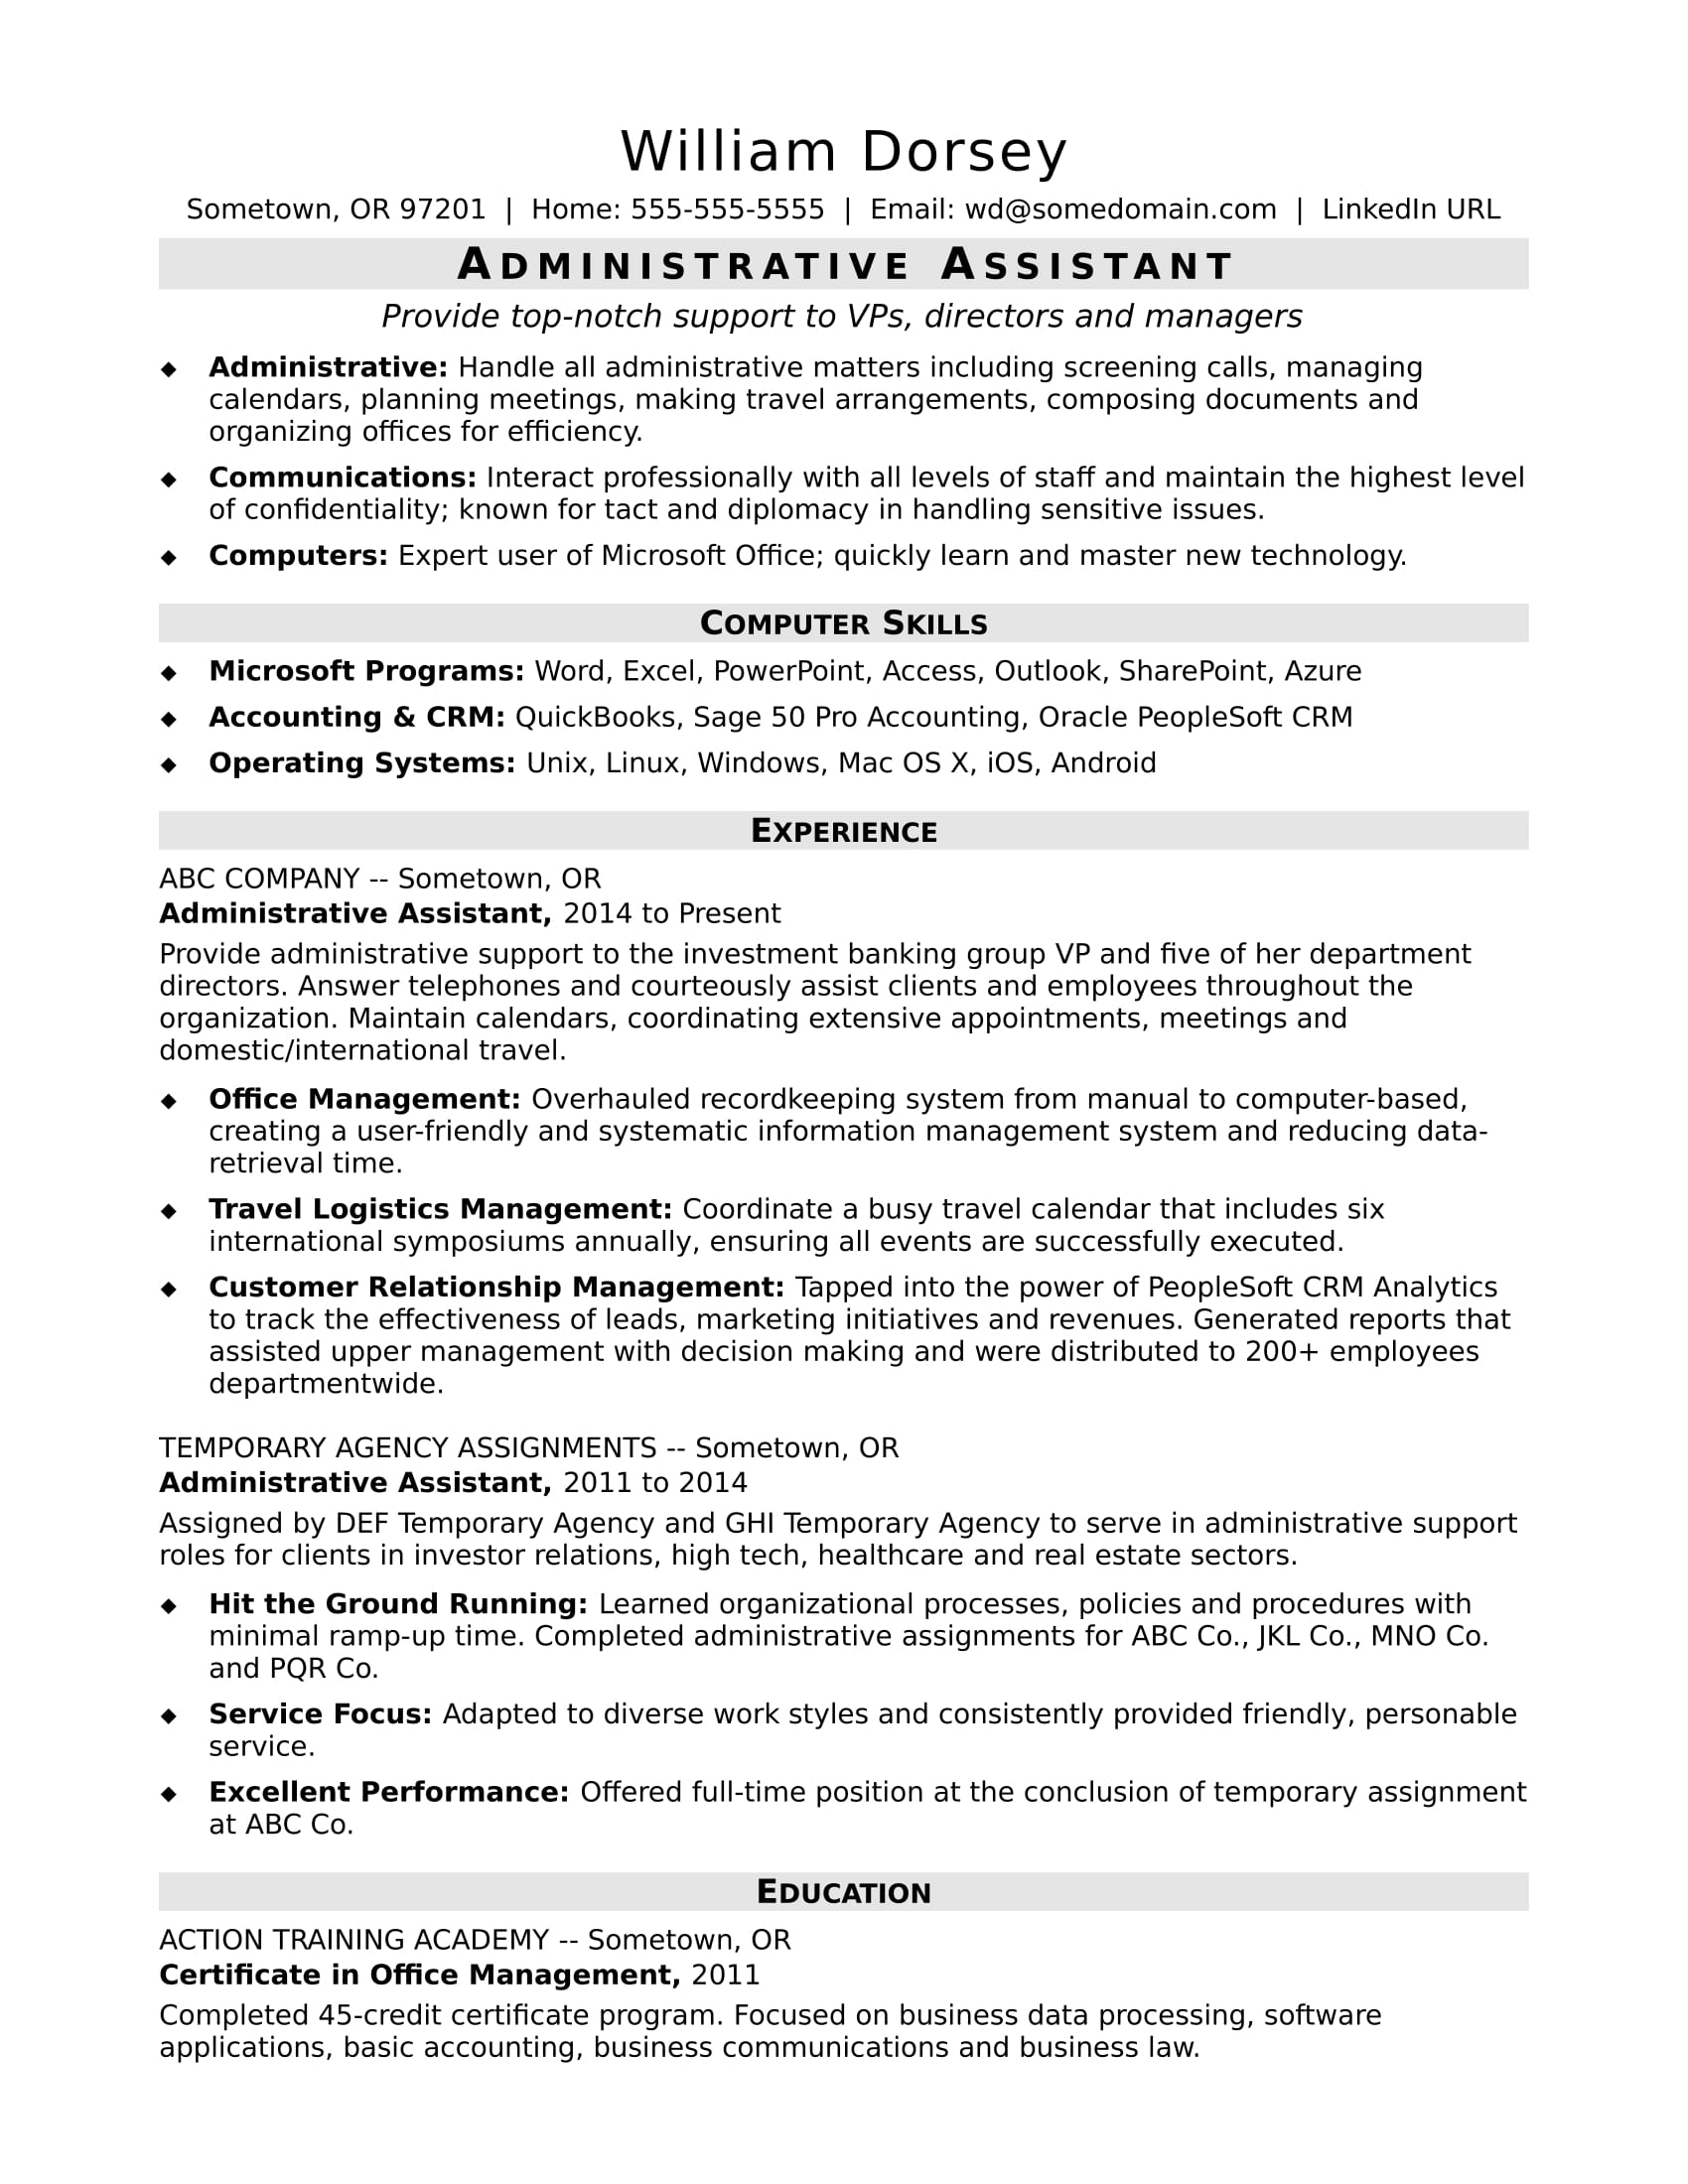 Midlevel administrative assistant resume sample monster sample resume for a midlevel administrative assistant madrichimfo Image collections